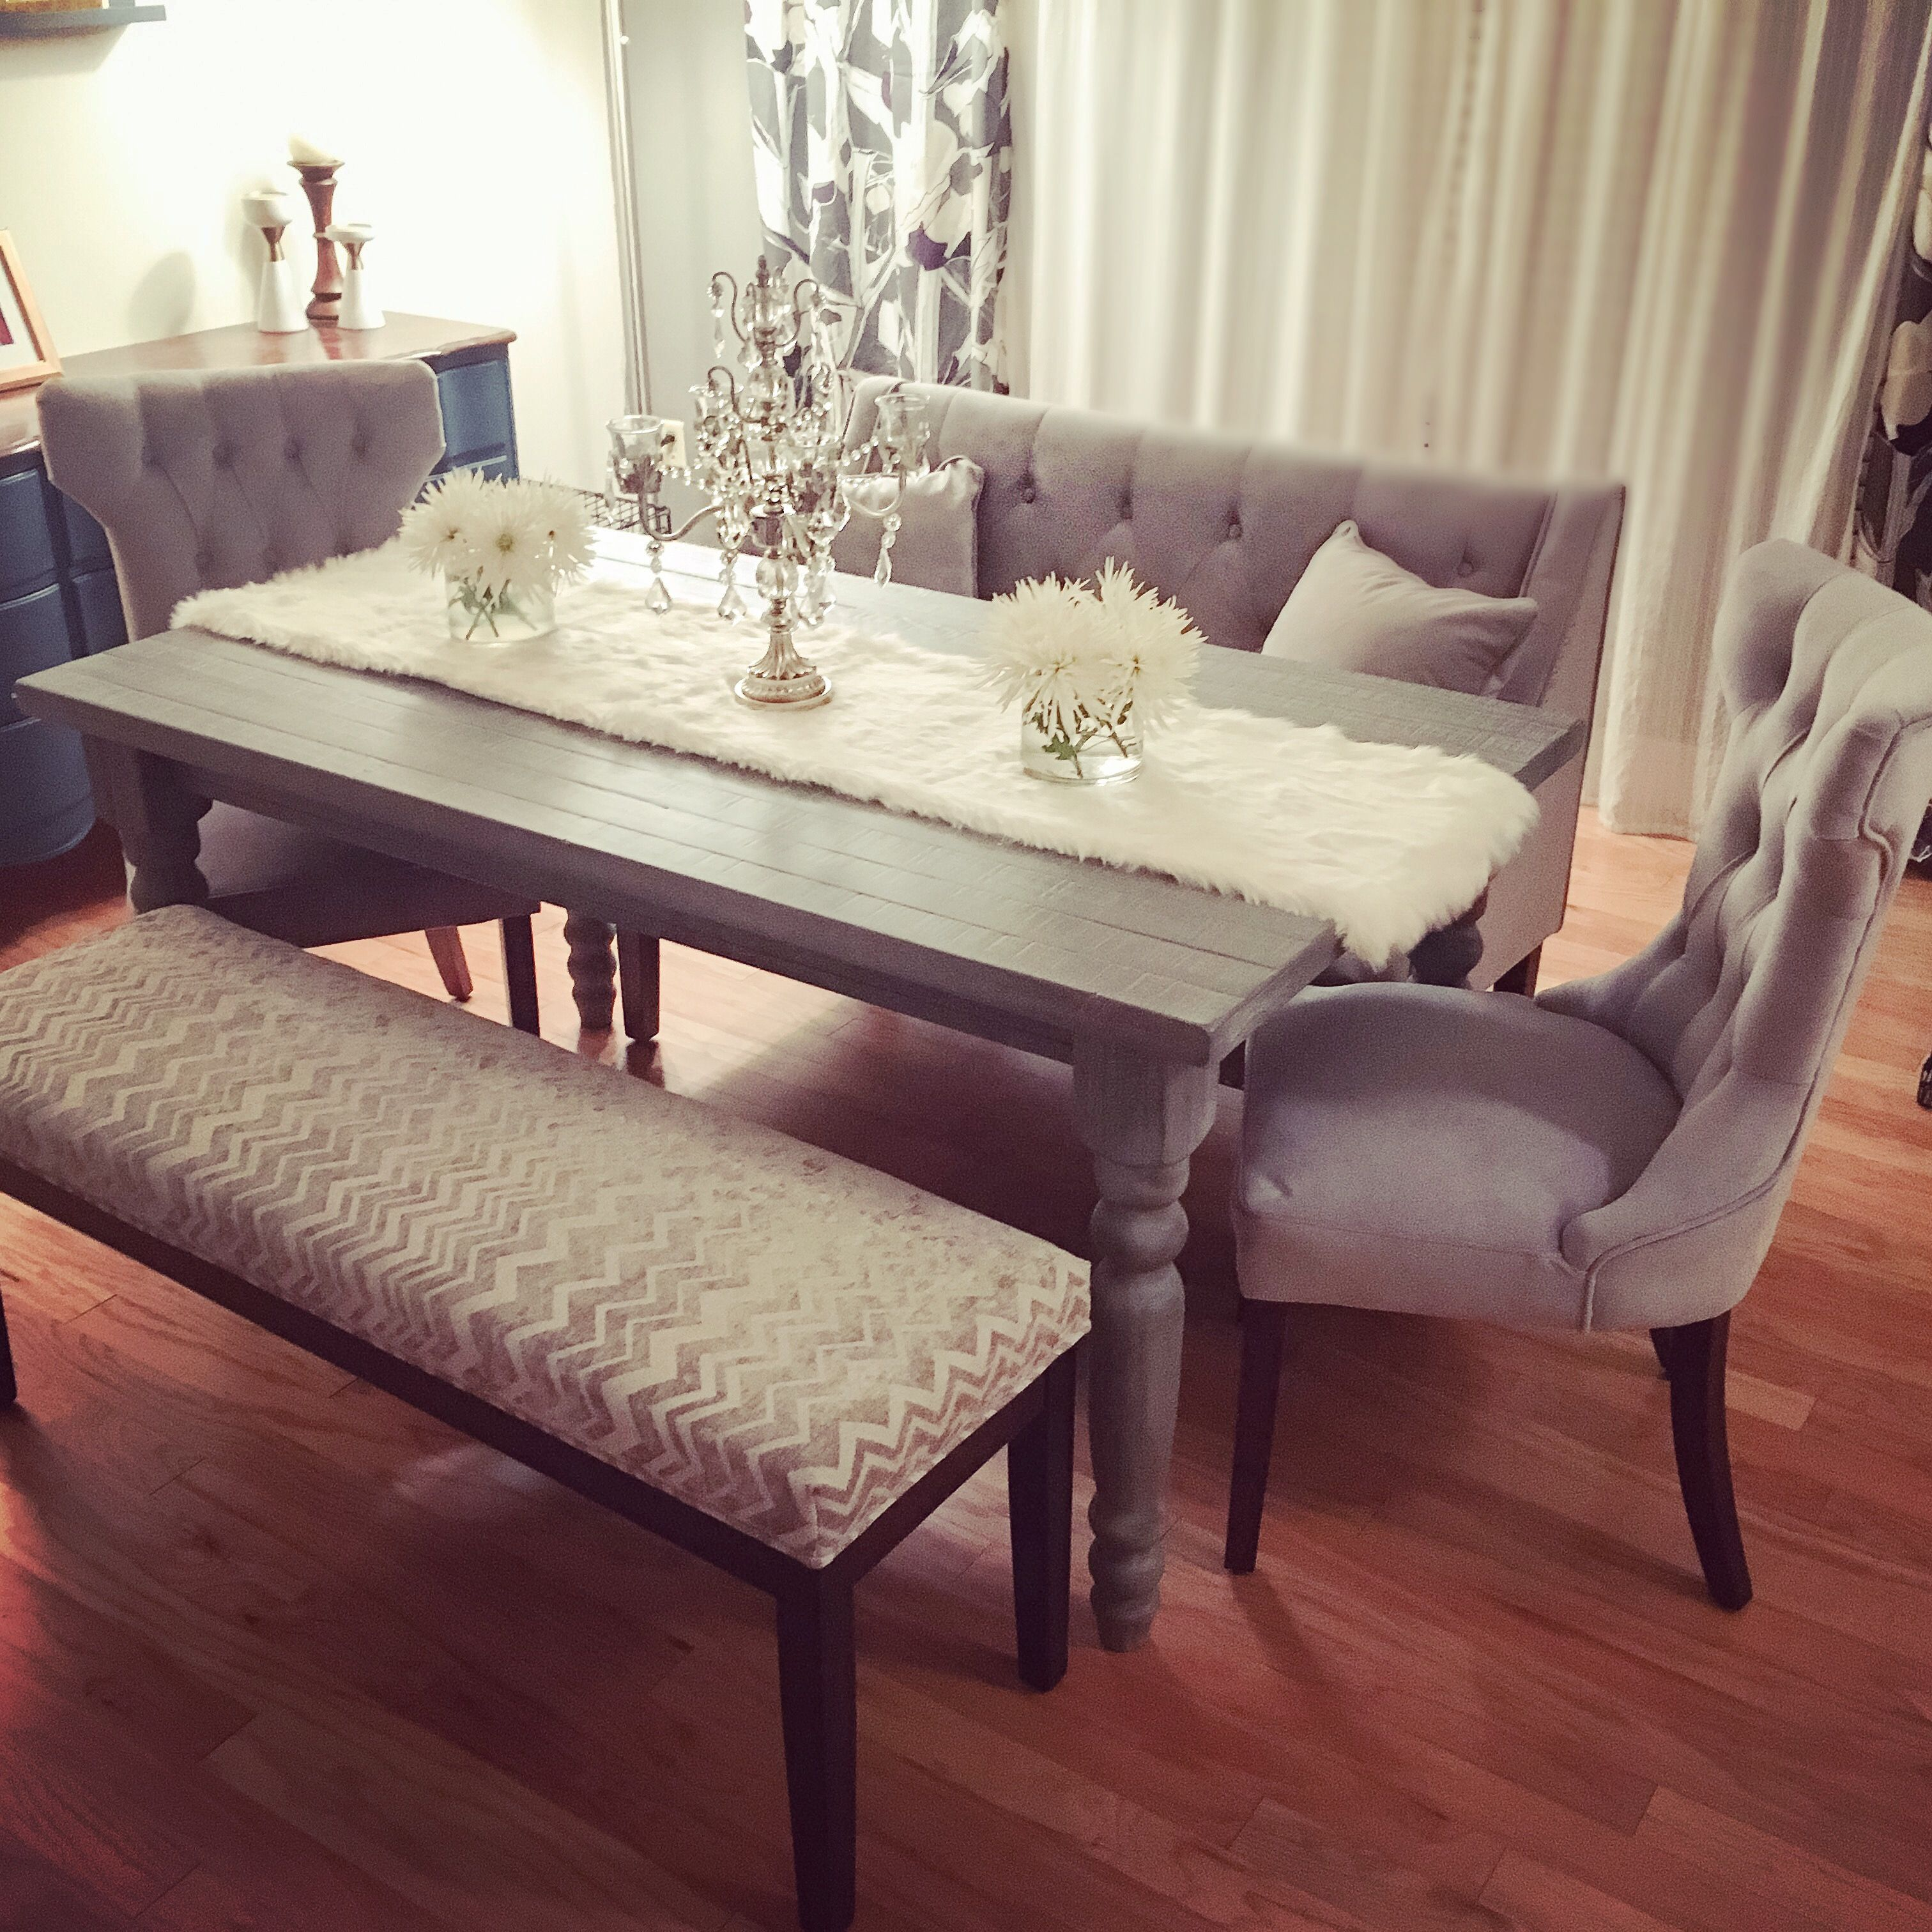 kitchen table set with bench wooden trash cans my new grey rustic chic dining tufted velvet chairs satee and chevron farmhouse style so in love